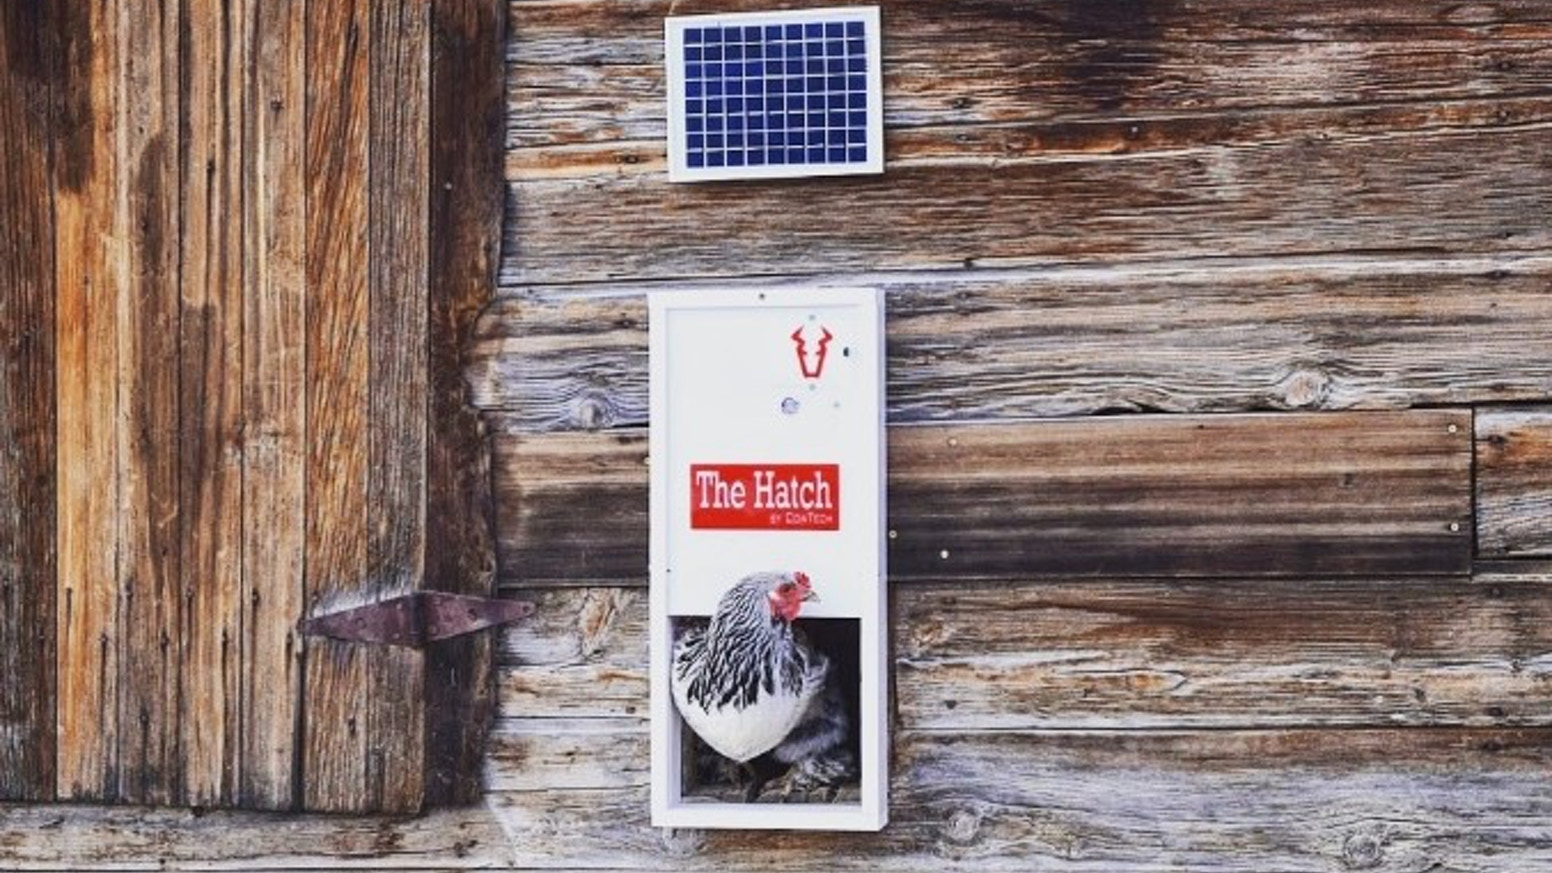 The Hatch: The World's Best Automatic Chicken Door by